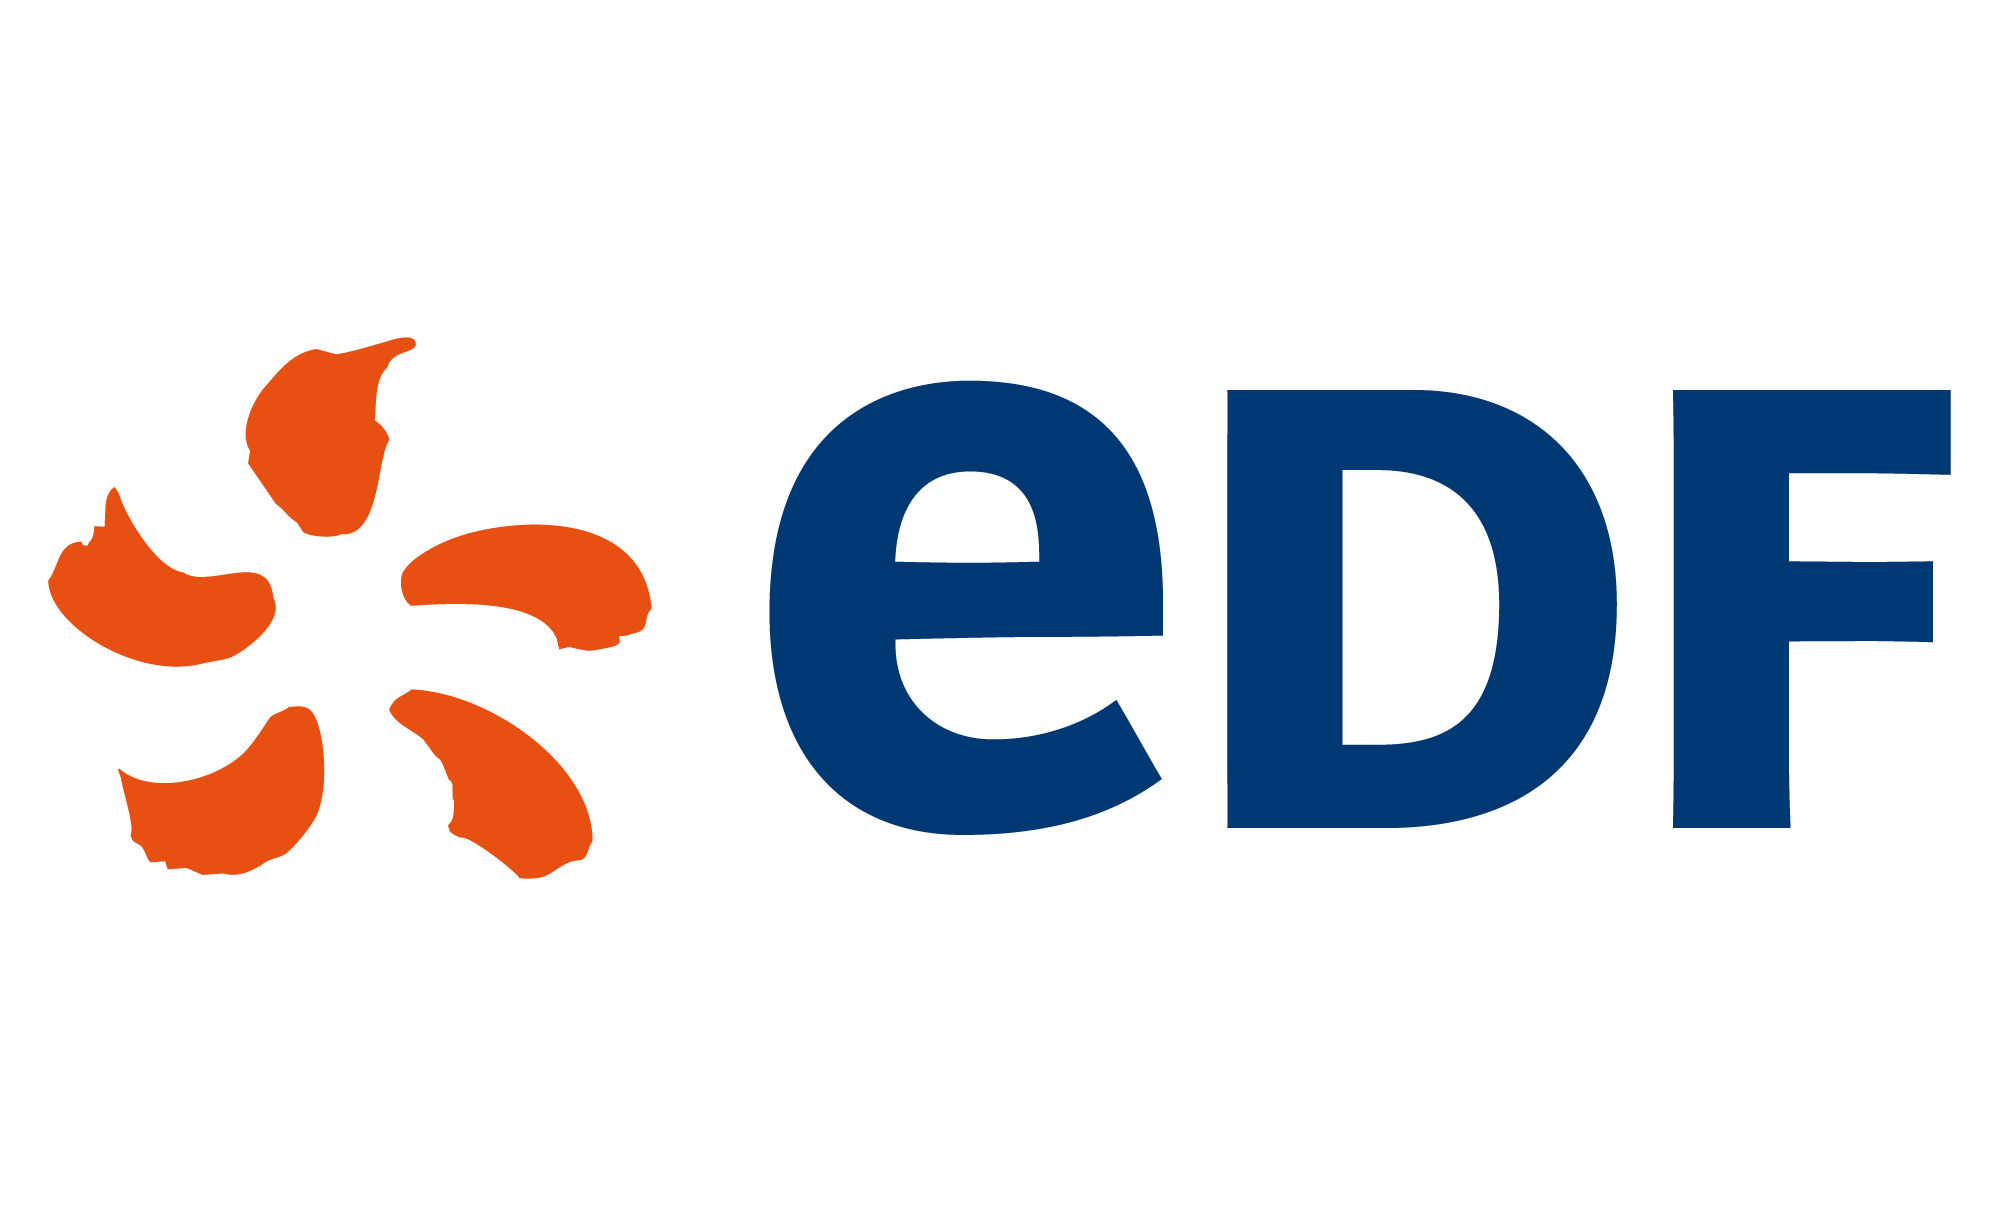 EDF are one of the big 6 energy companies